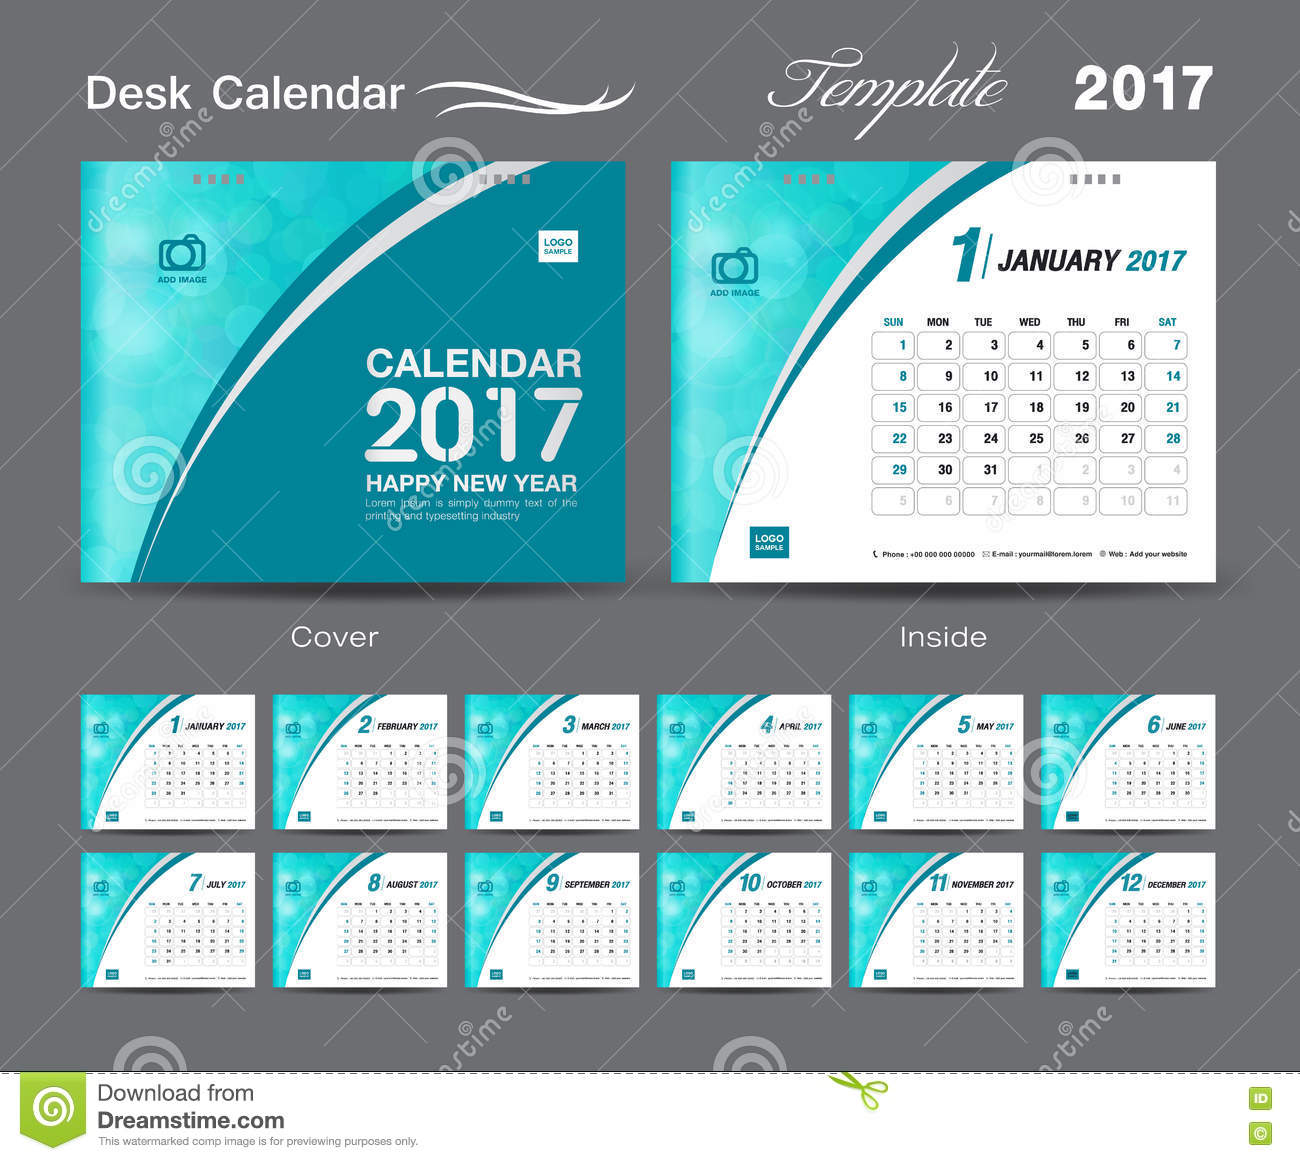 Calendar Typography Xp : Desk calendar template design set cover